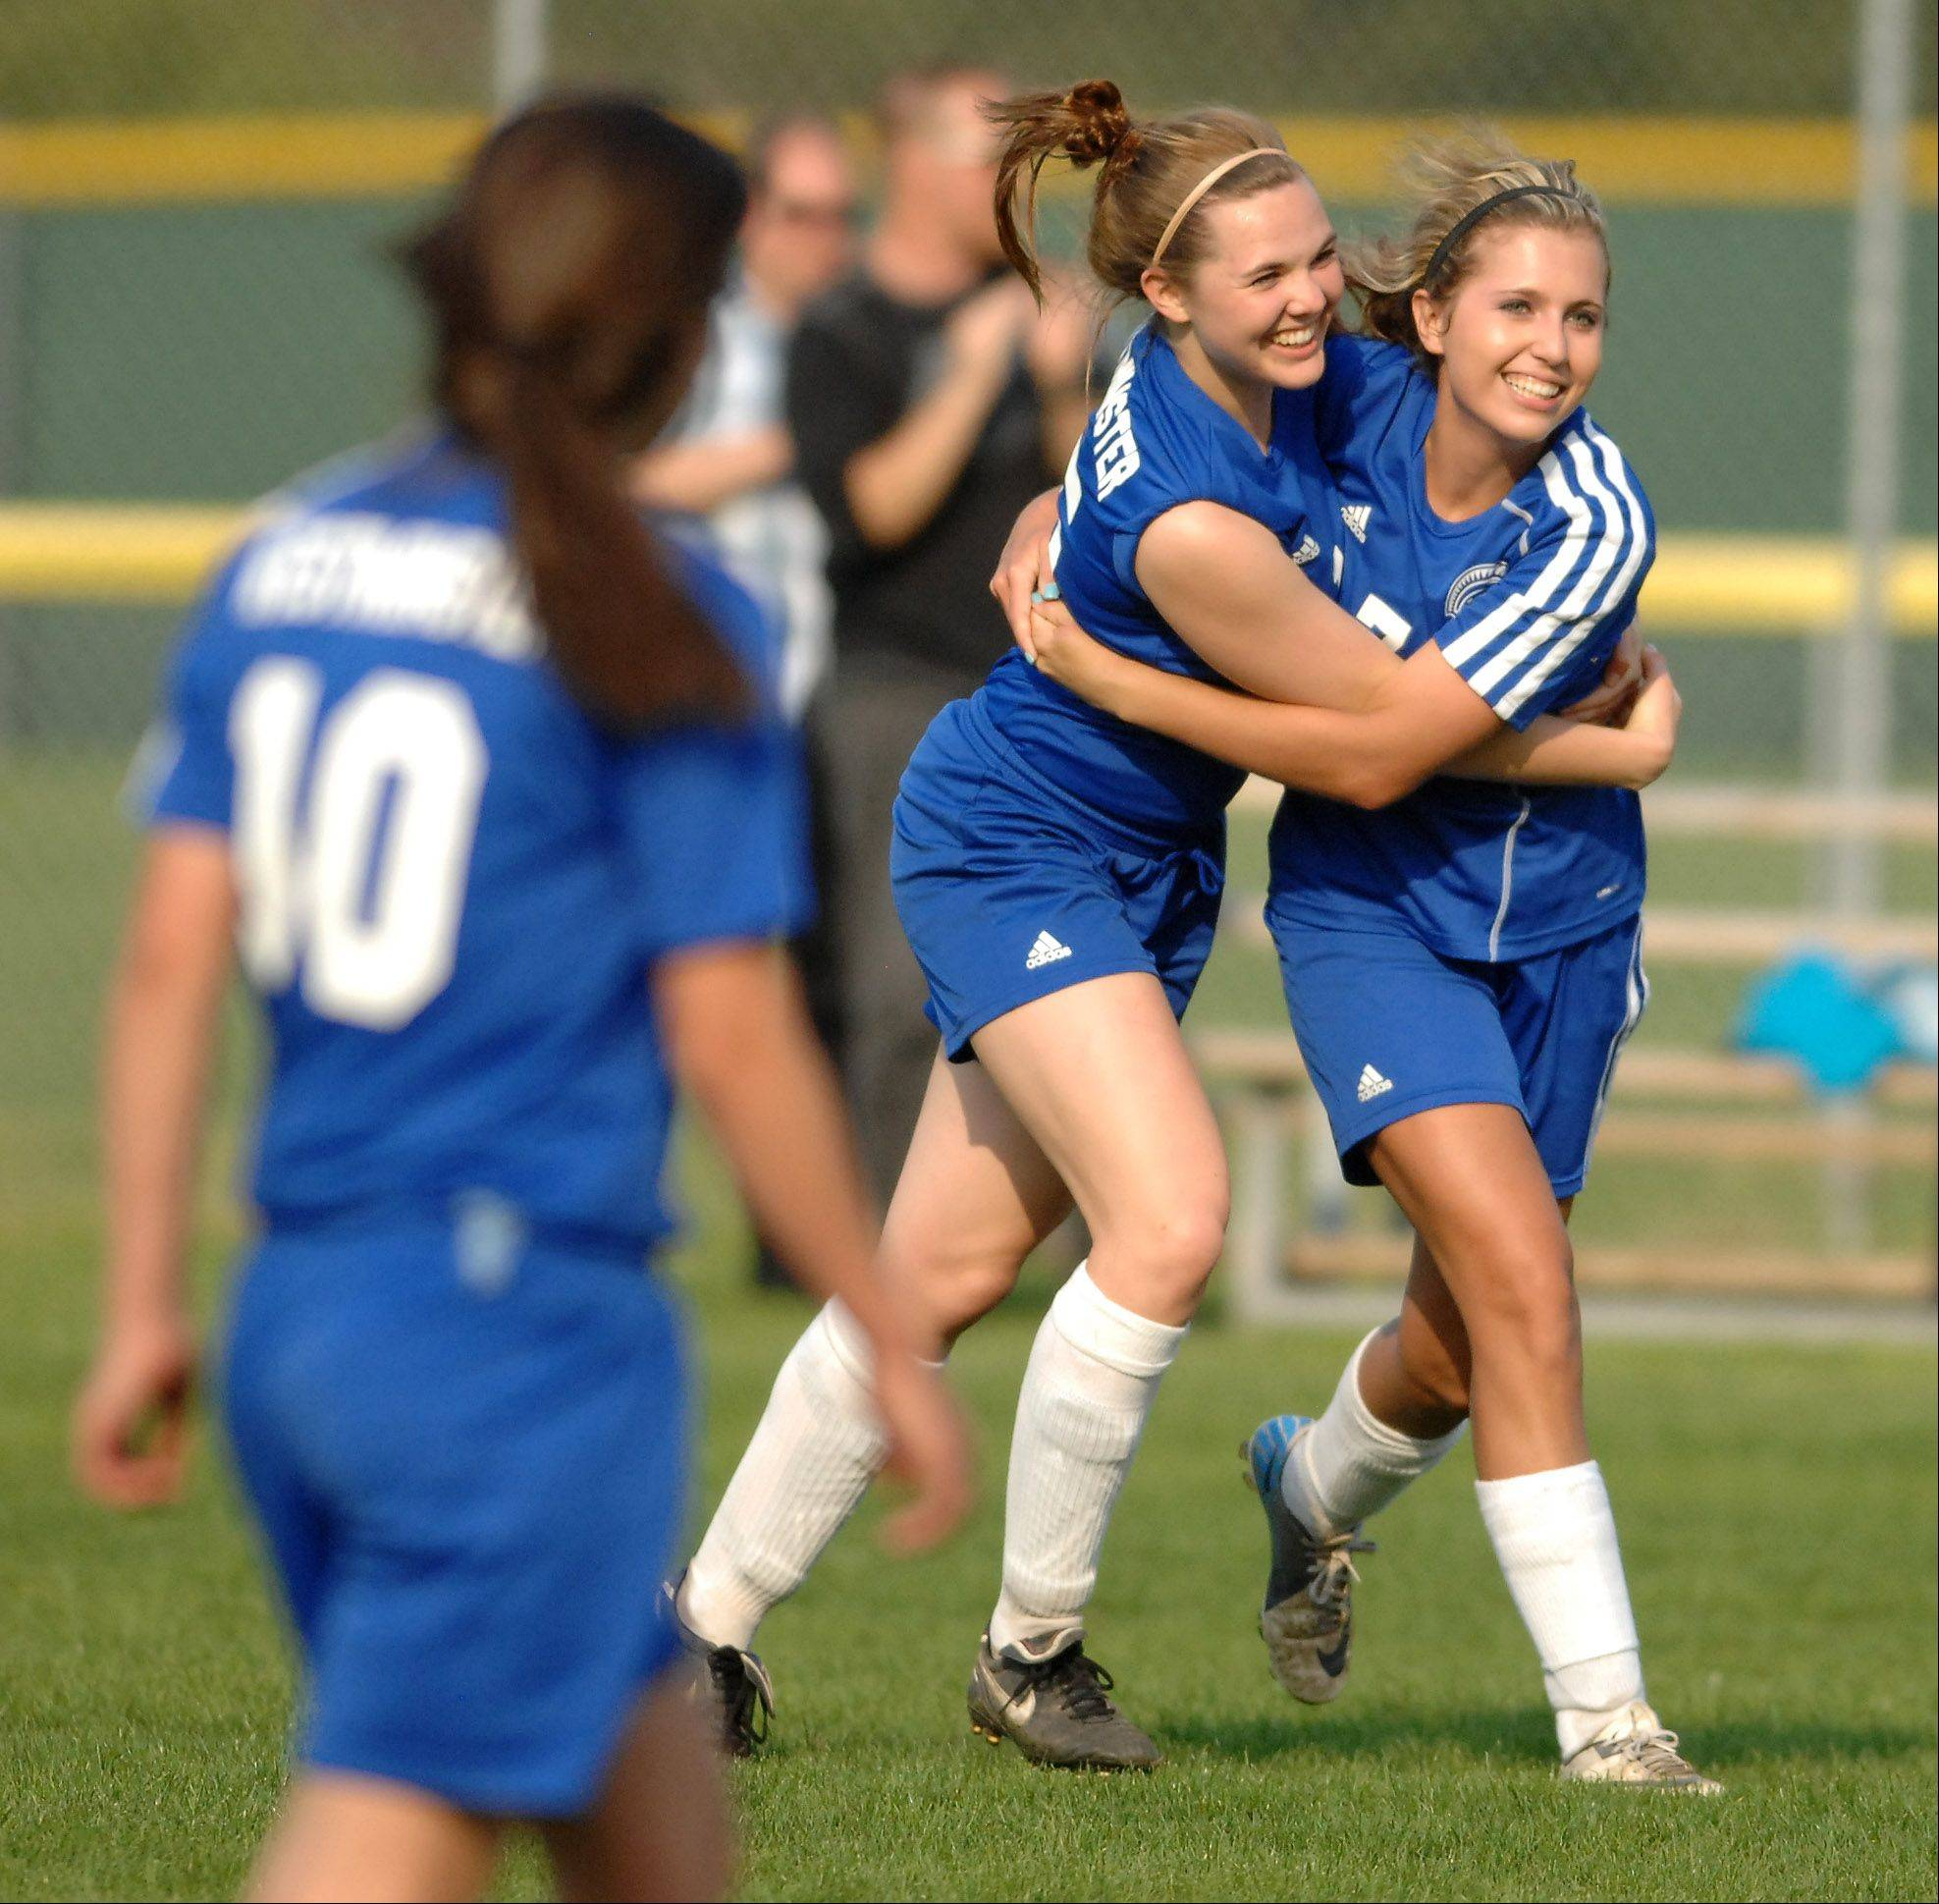 Westminster Christian's Helen Berntson, left center, hugs teammate Taylor Pedersen as the final whistle blows in their win over Harvest Christian during Wednesday's Class 1A regional semifinal in Elgin.